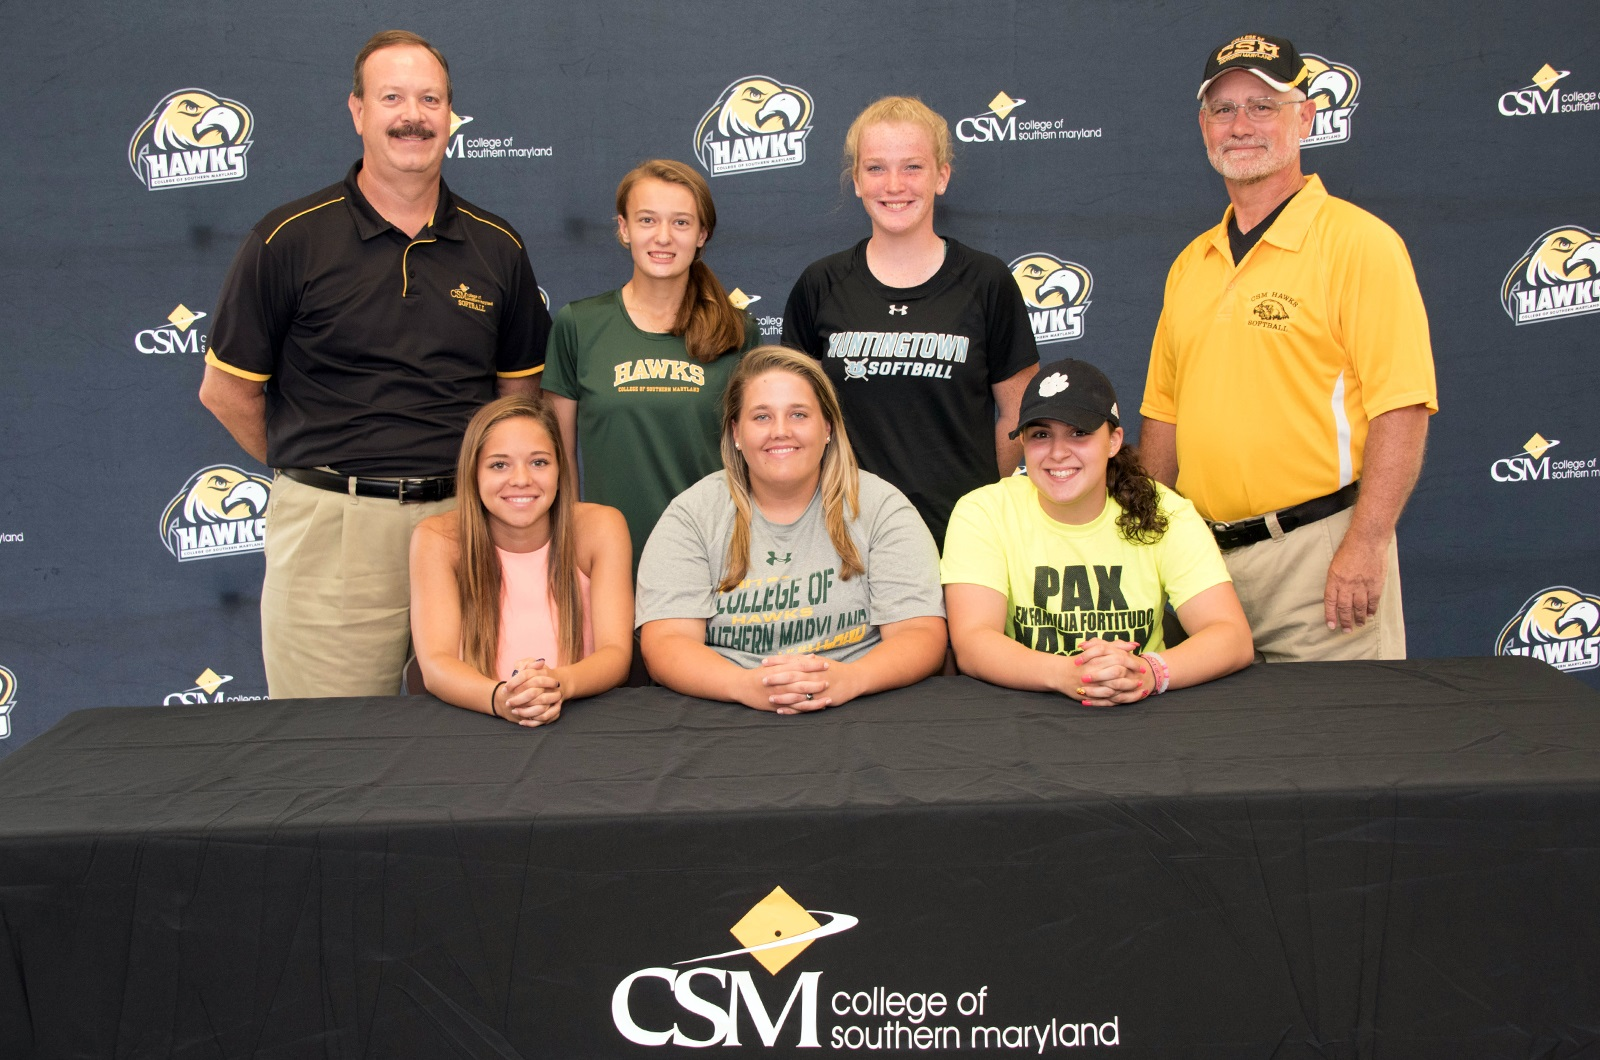 CSM Signs Five to Women's Softball Team for 2018 Season